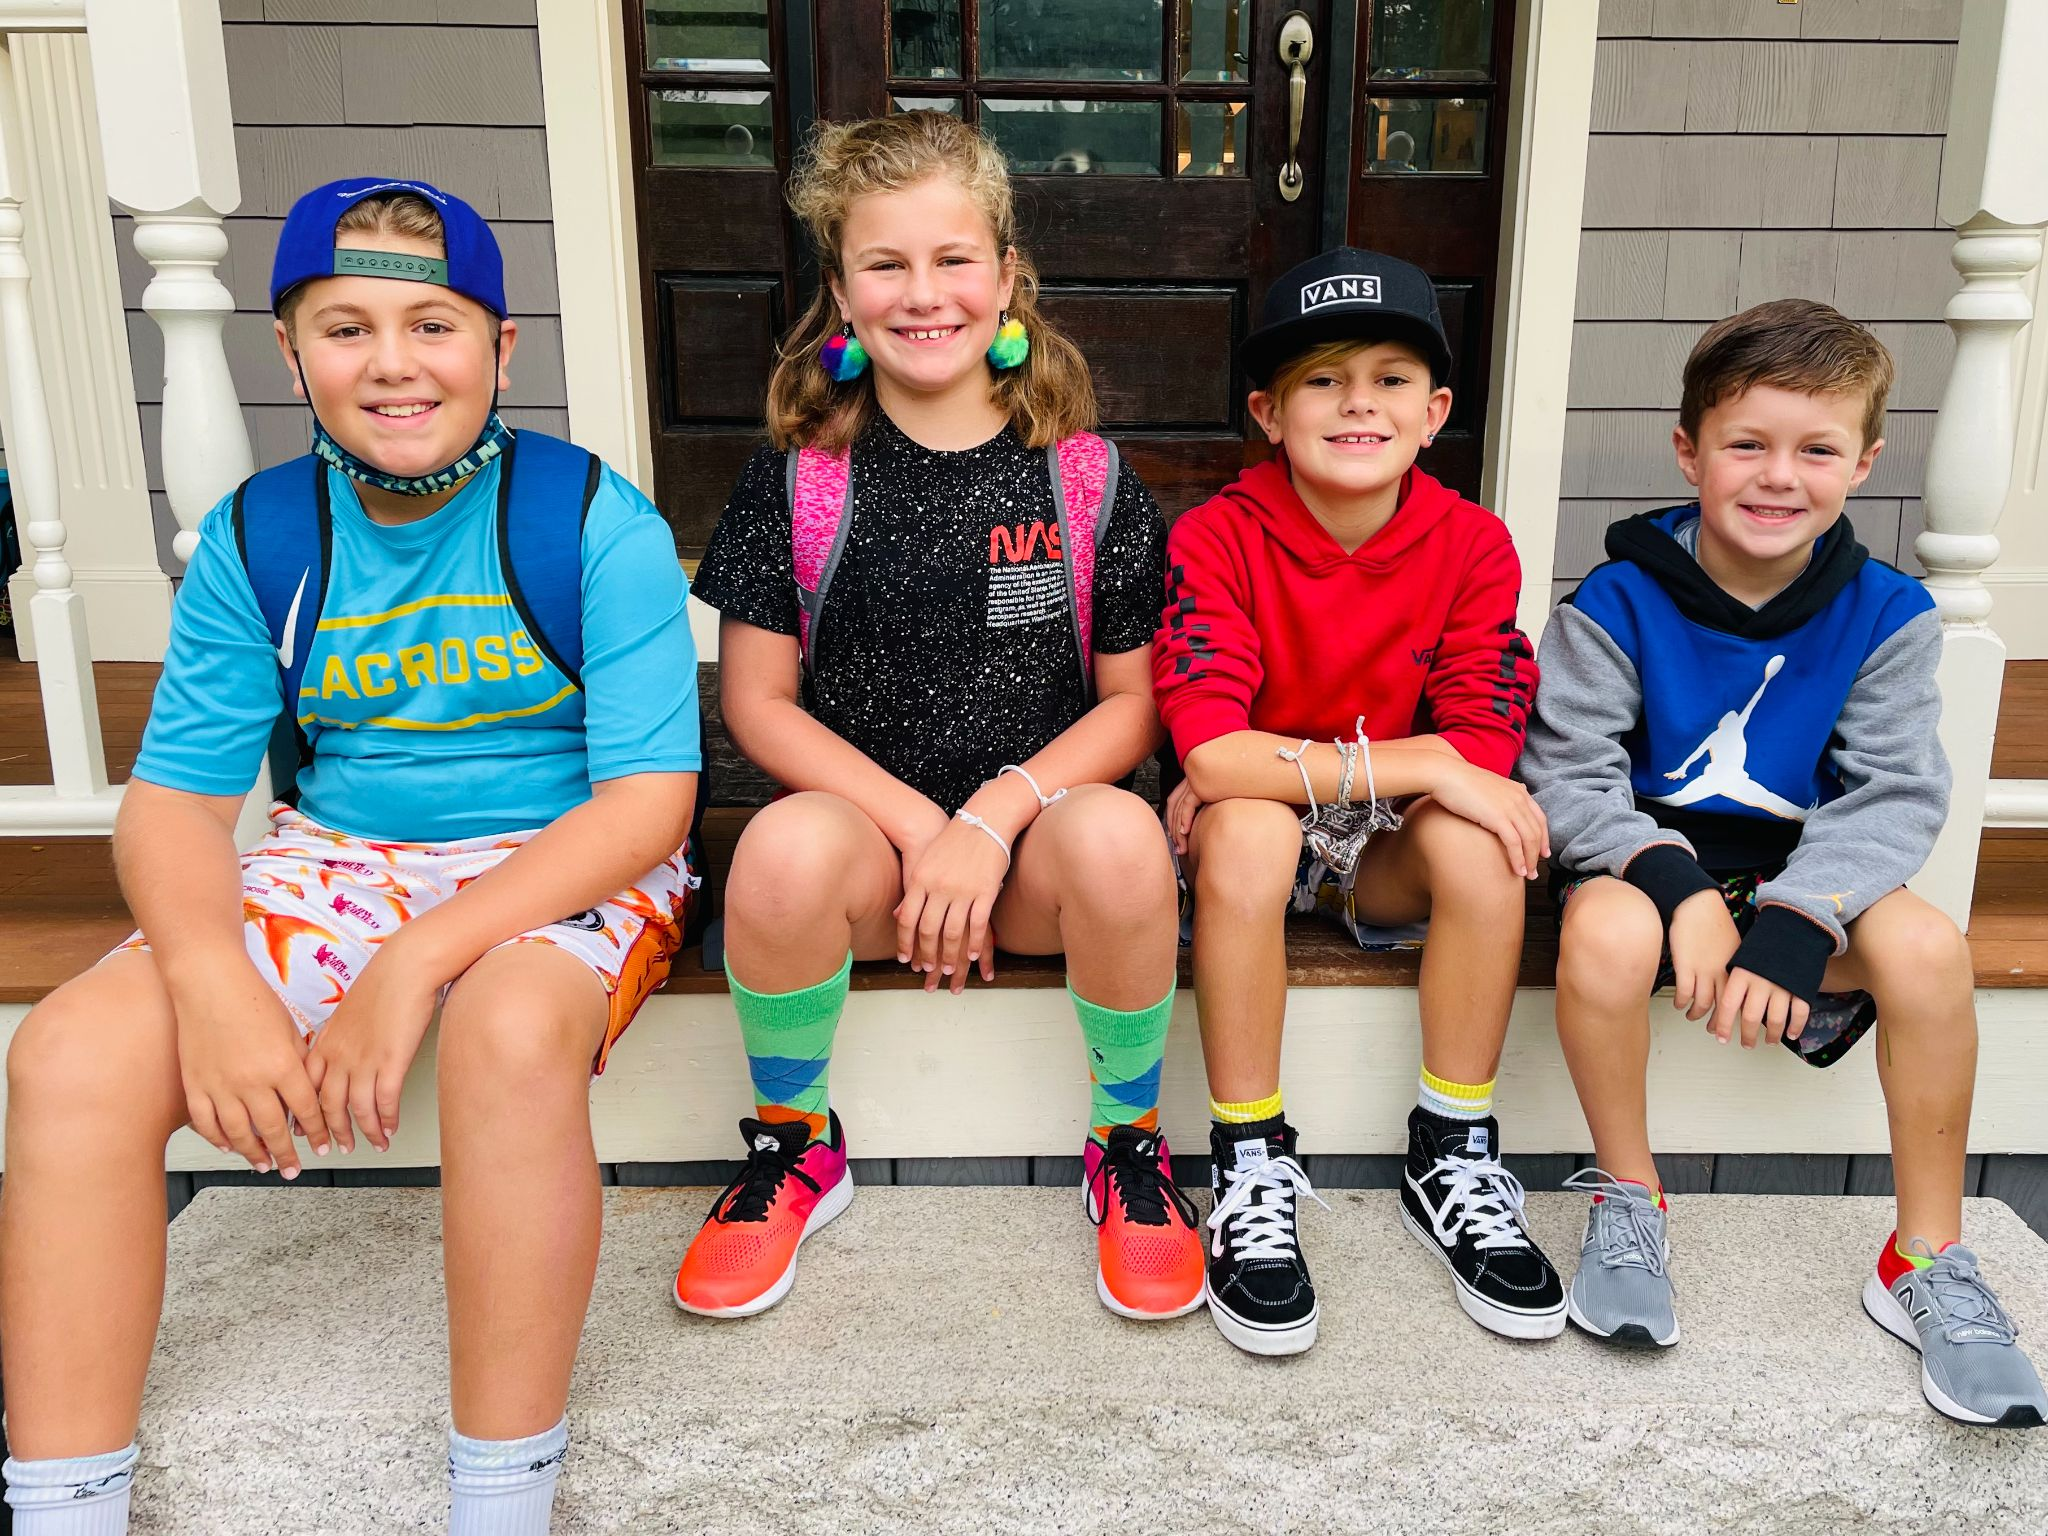 Picture of Katie Novak's 4 kids on their first day of school